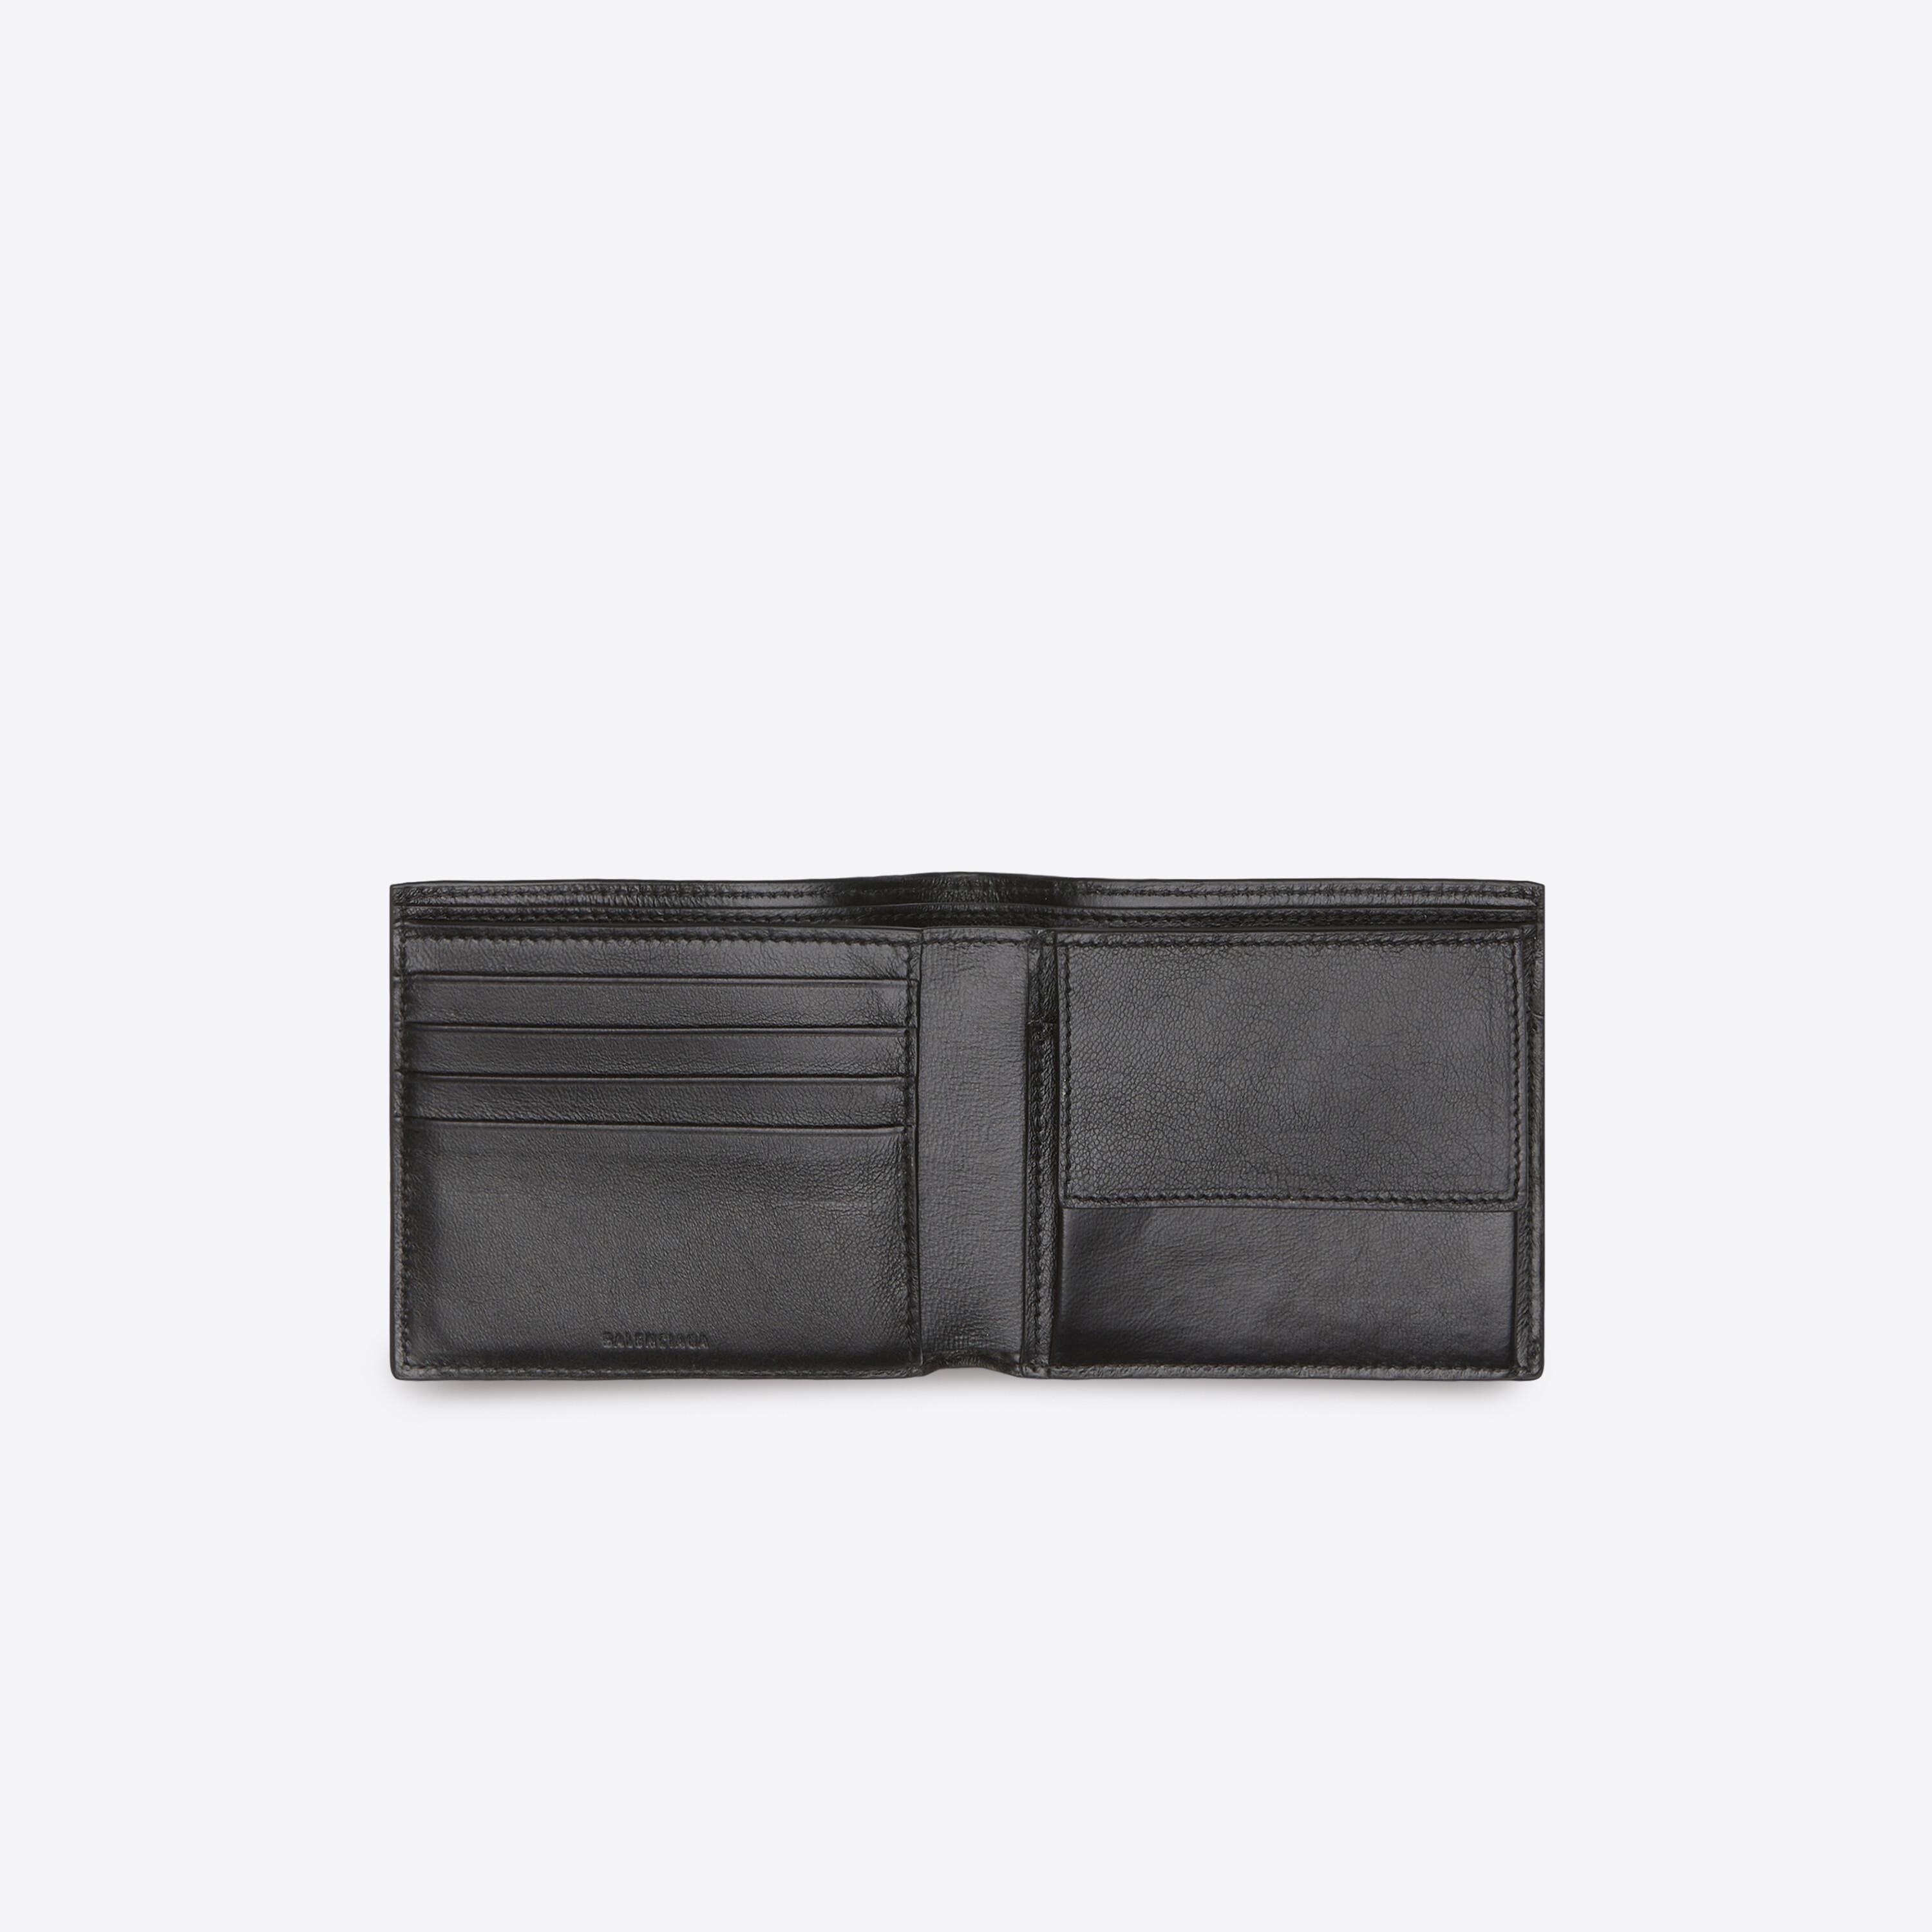 Cash Square Folded Coin Wallet 2